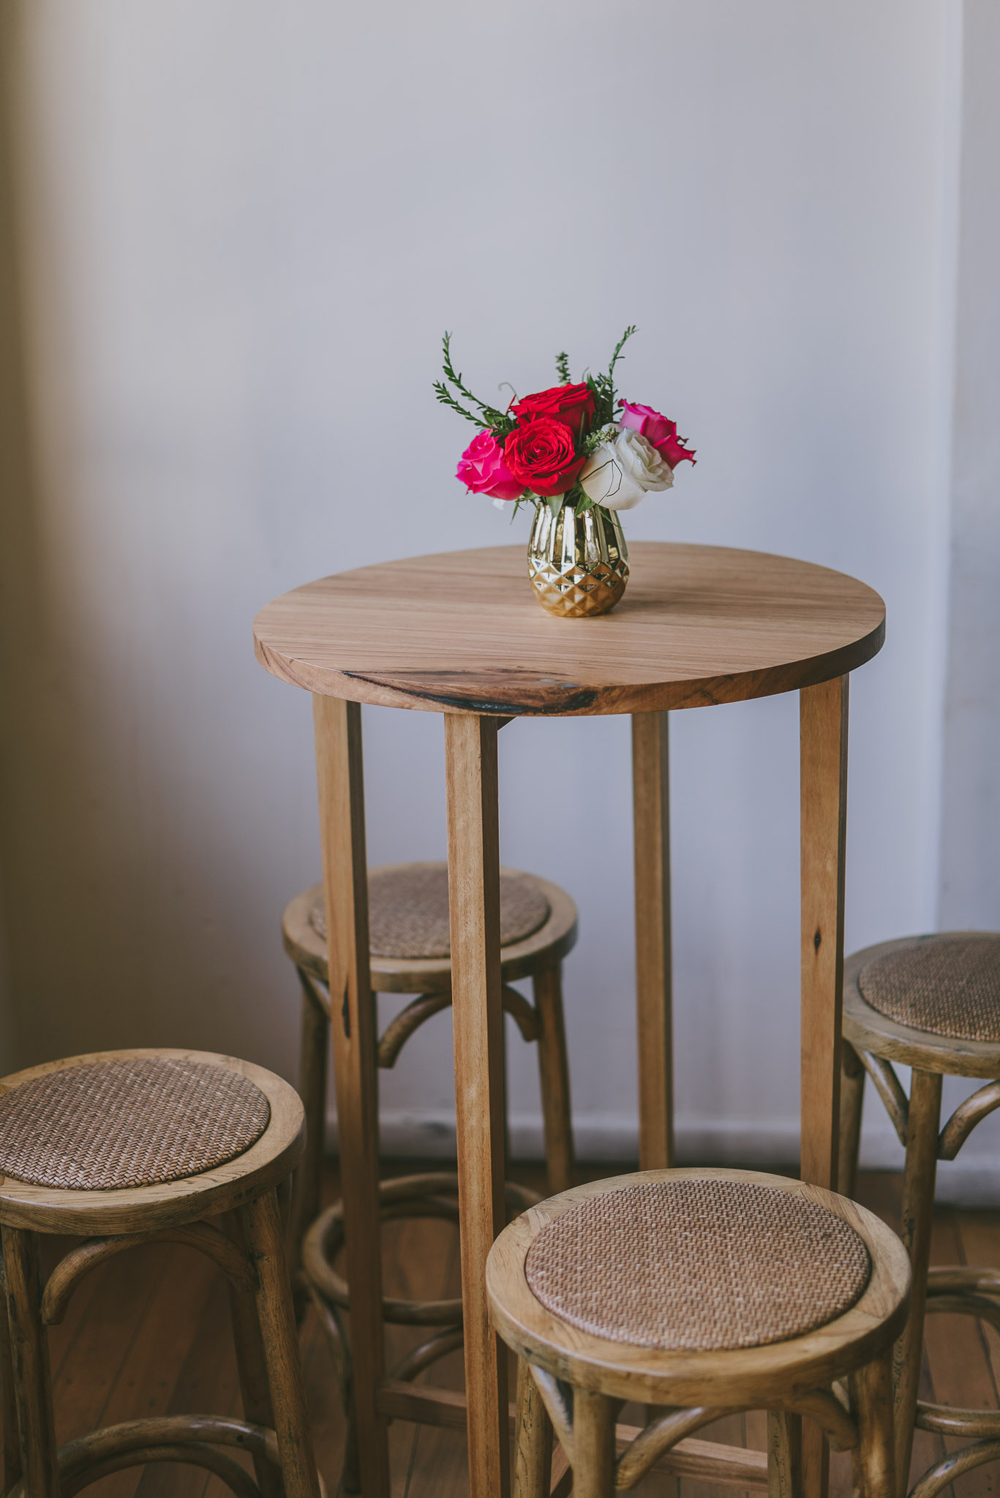 Justin Lane Burleigh Wedding - Cocktail furniture by Lovestruck Weddings